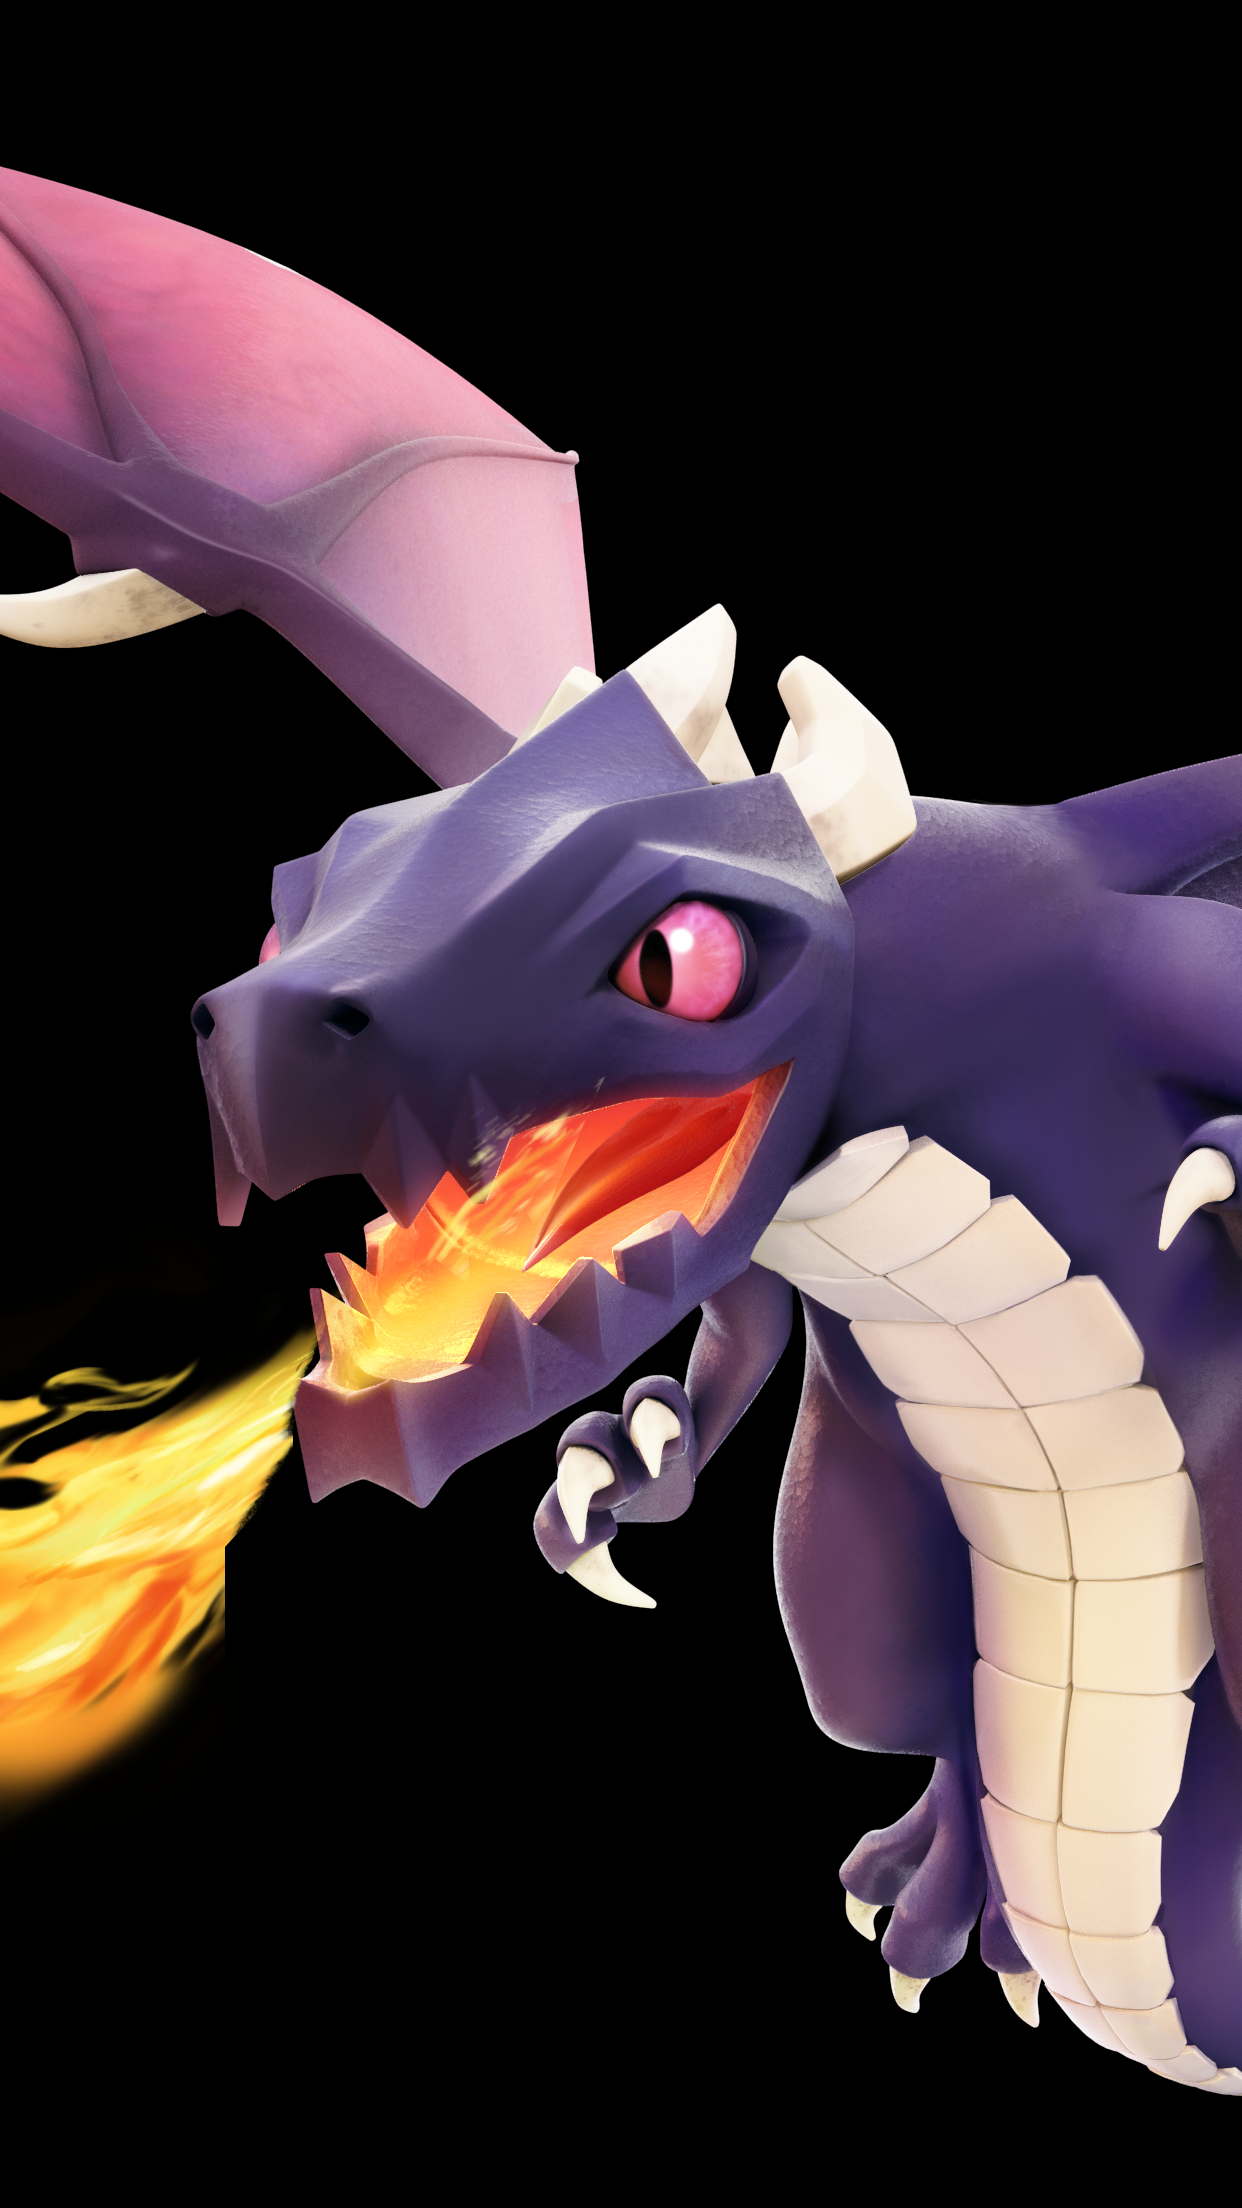 Clash Of Clans Dragon Wallpaper For Iphone X 8 7 6 Free